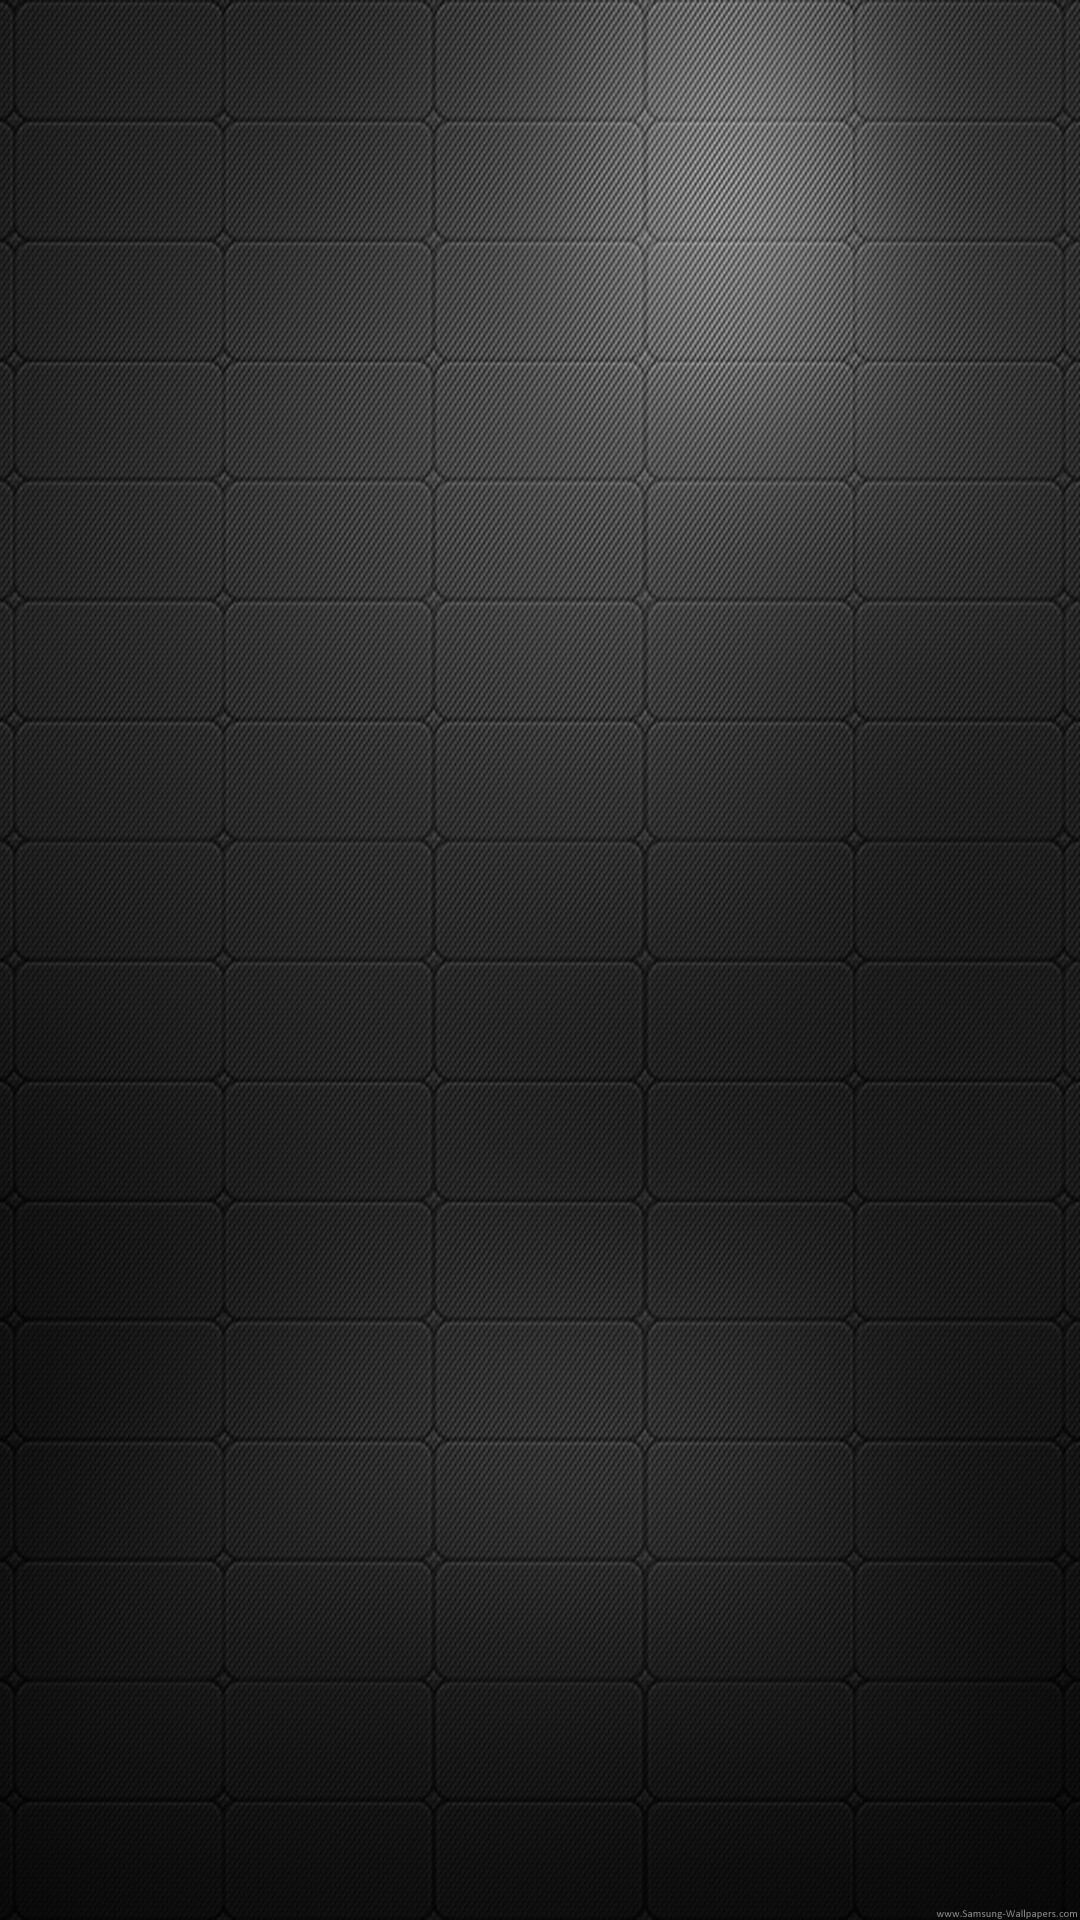 Black Screen Wallpapers - WallpaperPulse